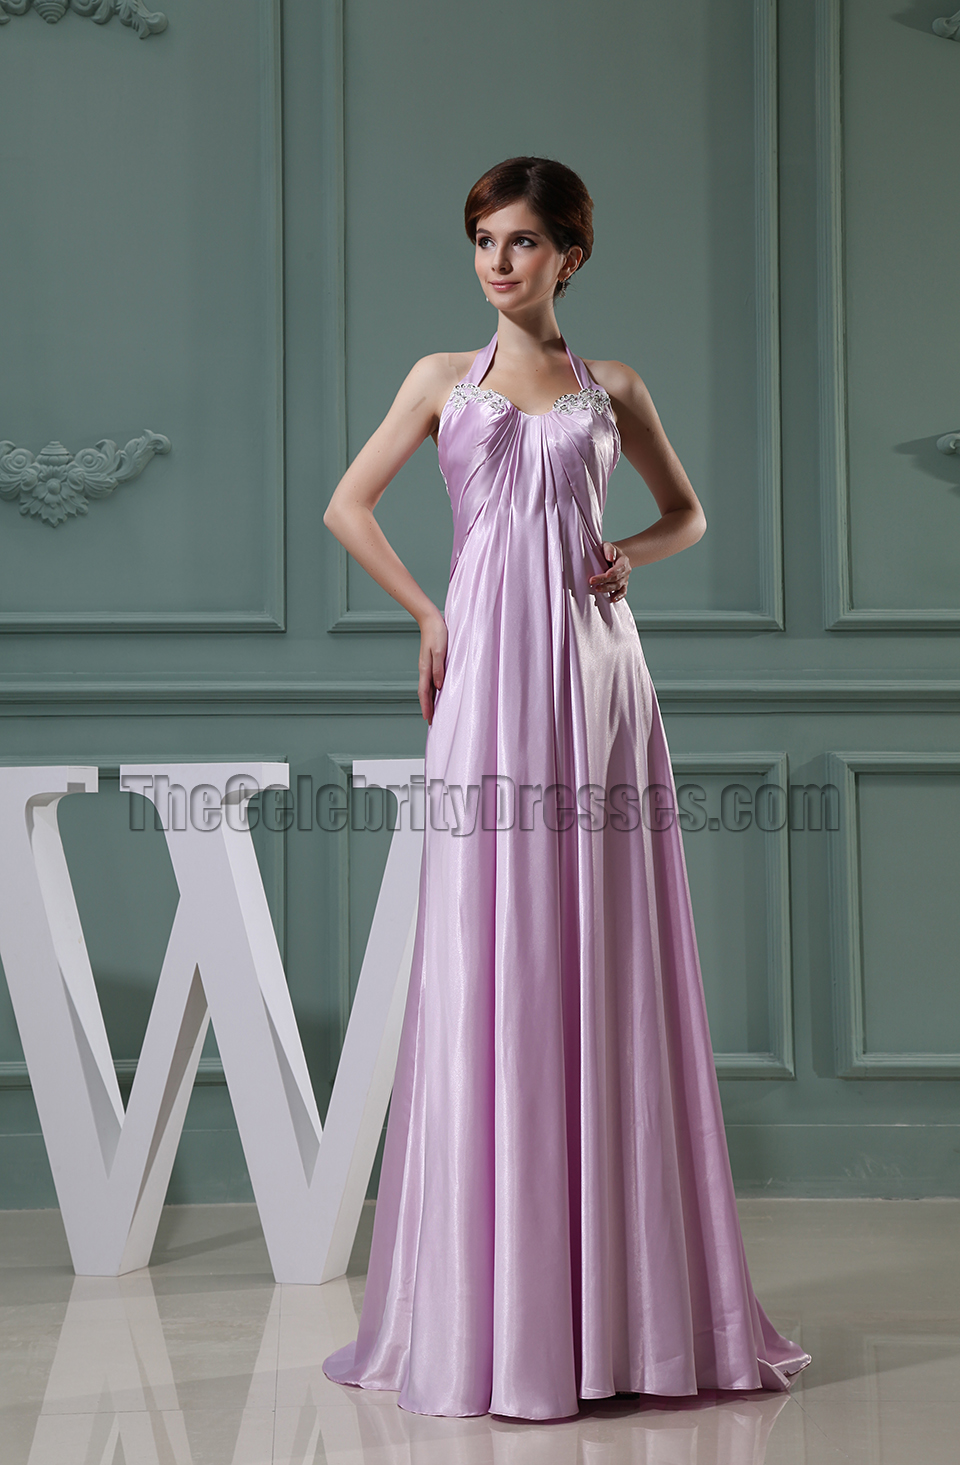 Lilac Halter Long Prom Dress Evening Formal Dresses - TheCelebrityDresses